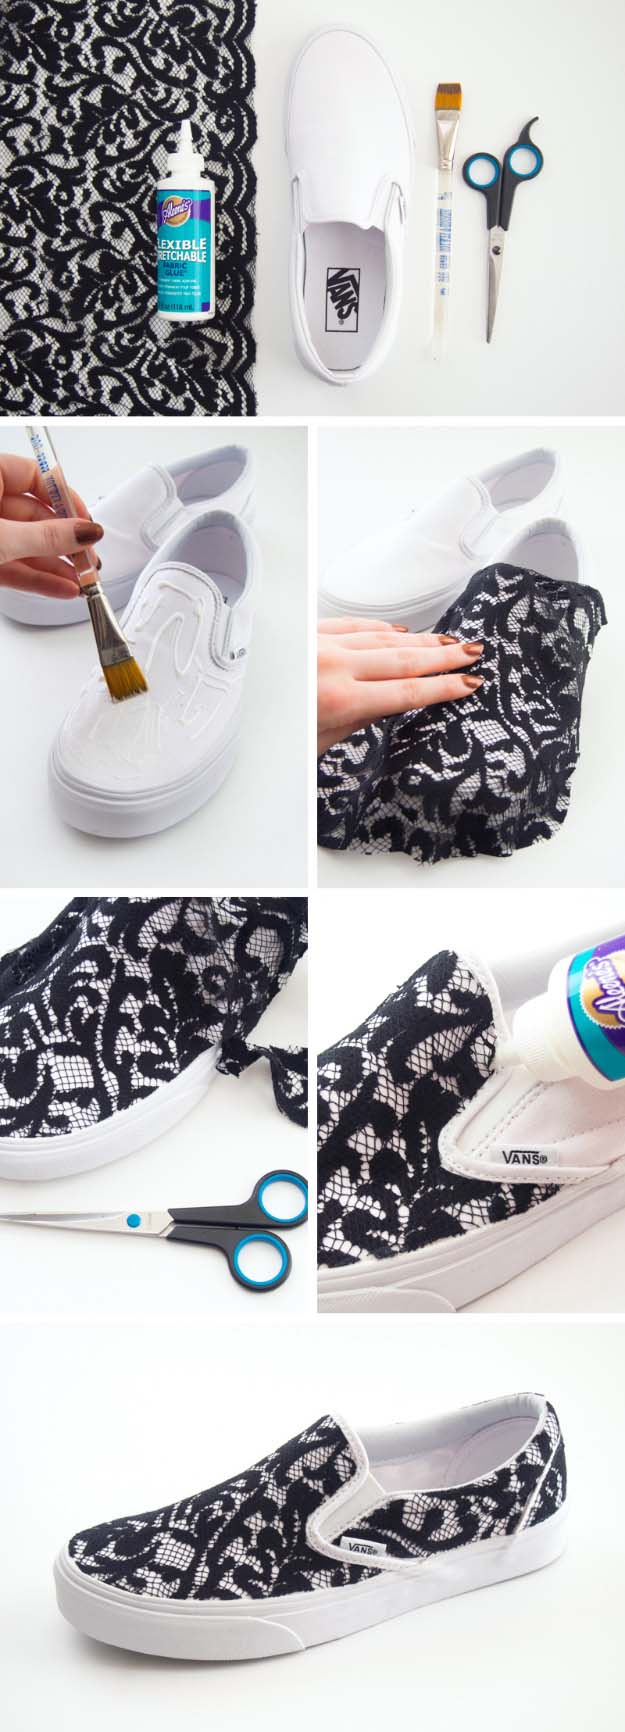 Cool DIY Fashion Ideas - DIY Projects for Teens